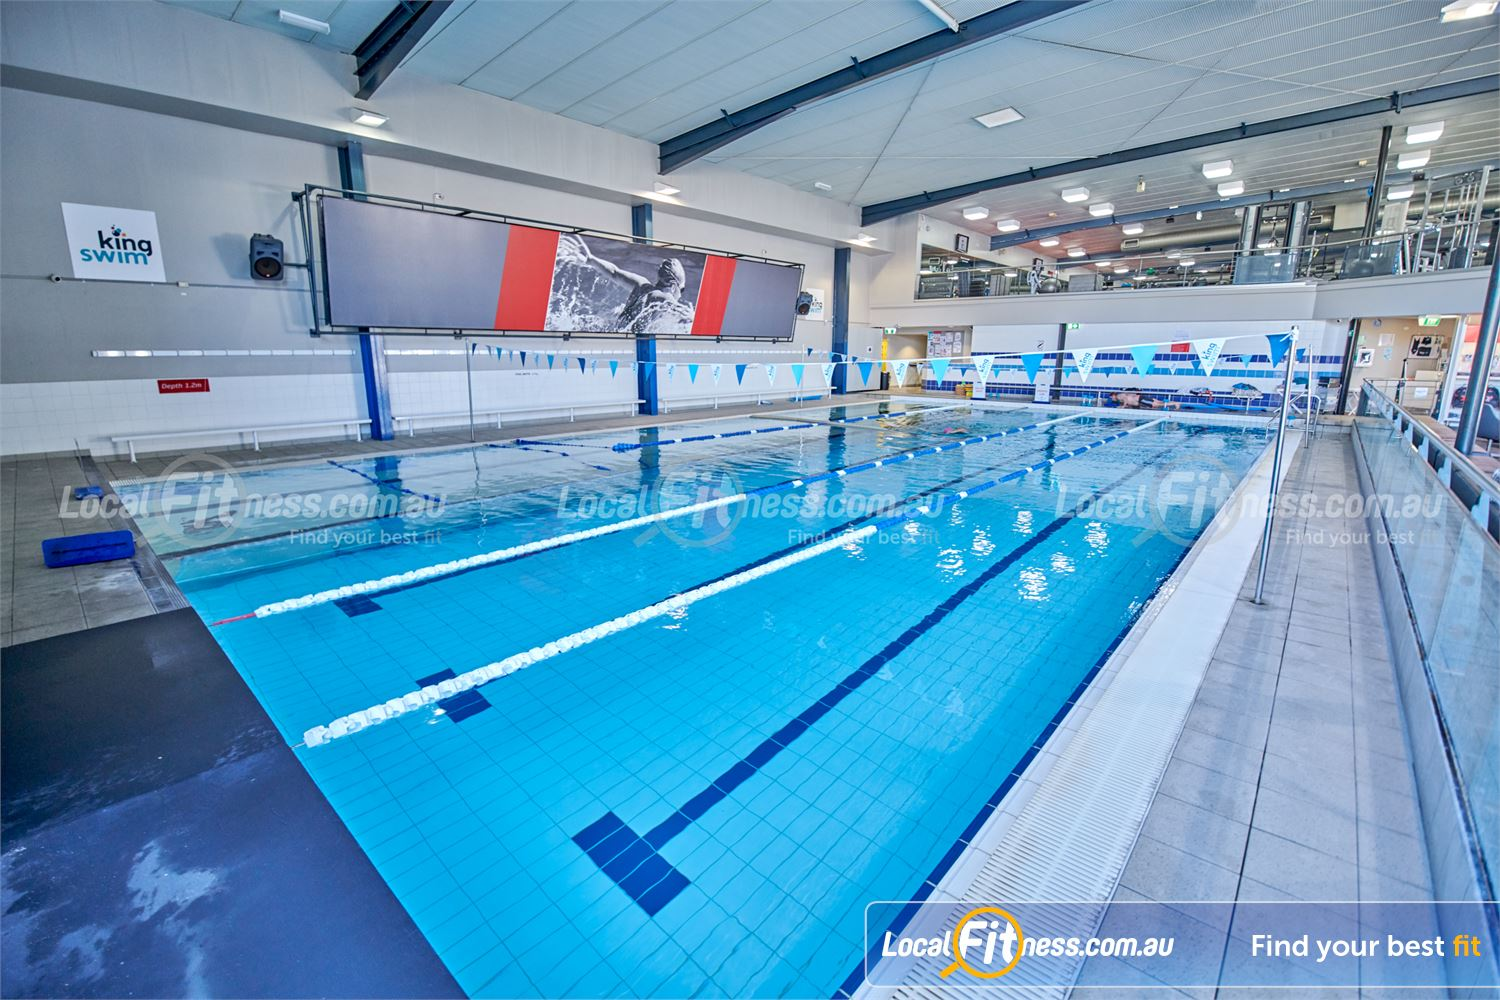 Fitness First Bayside Highett Join our aqua classes in our Bayside swimming pool.